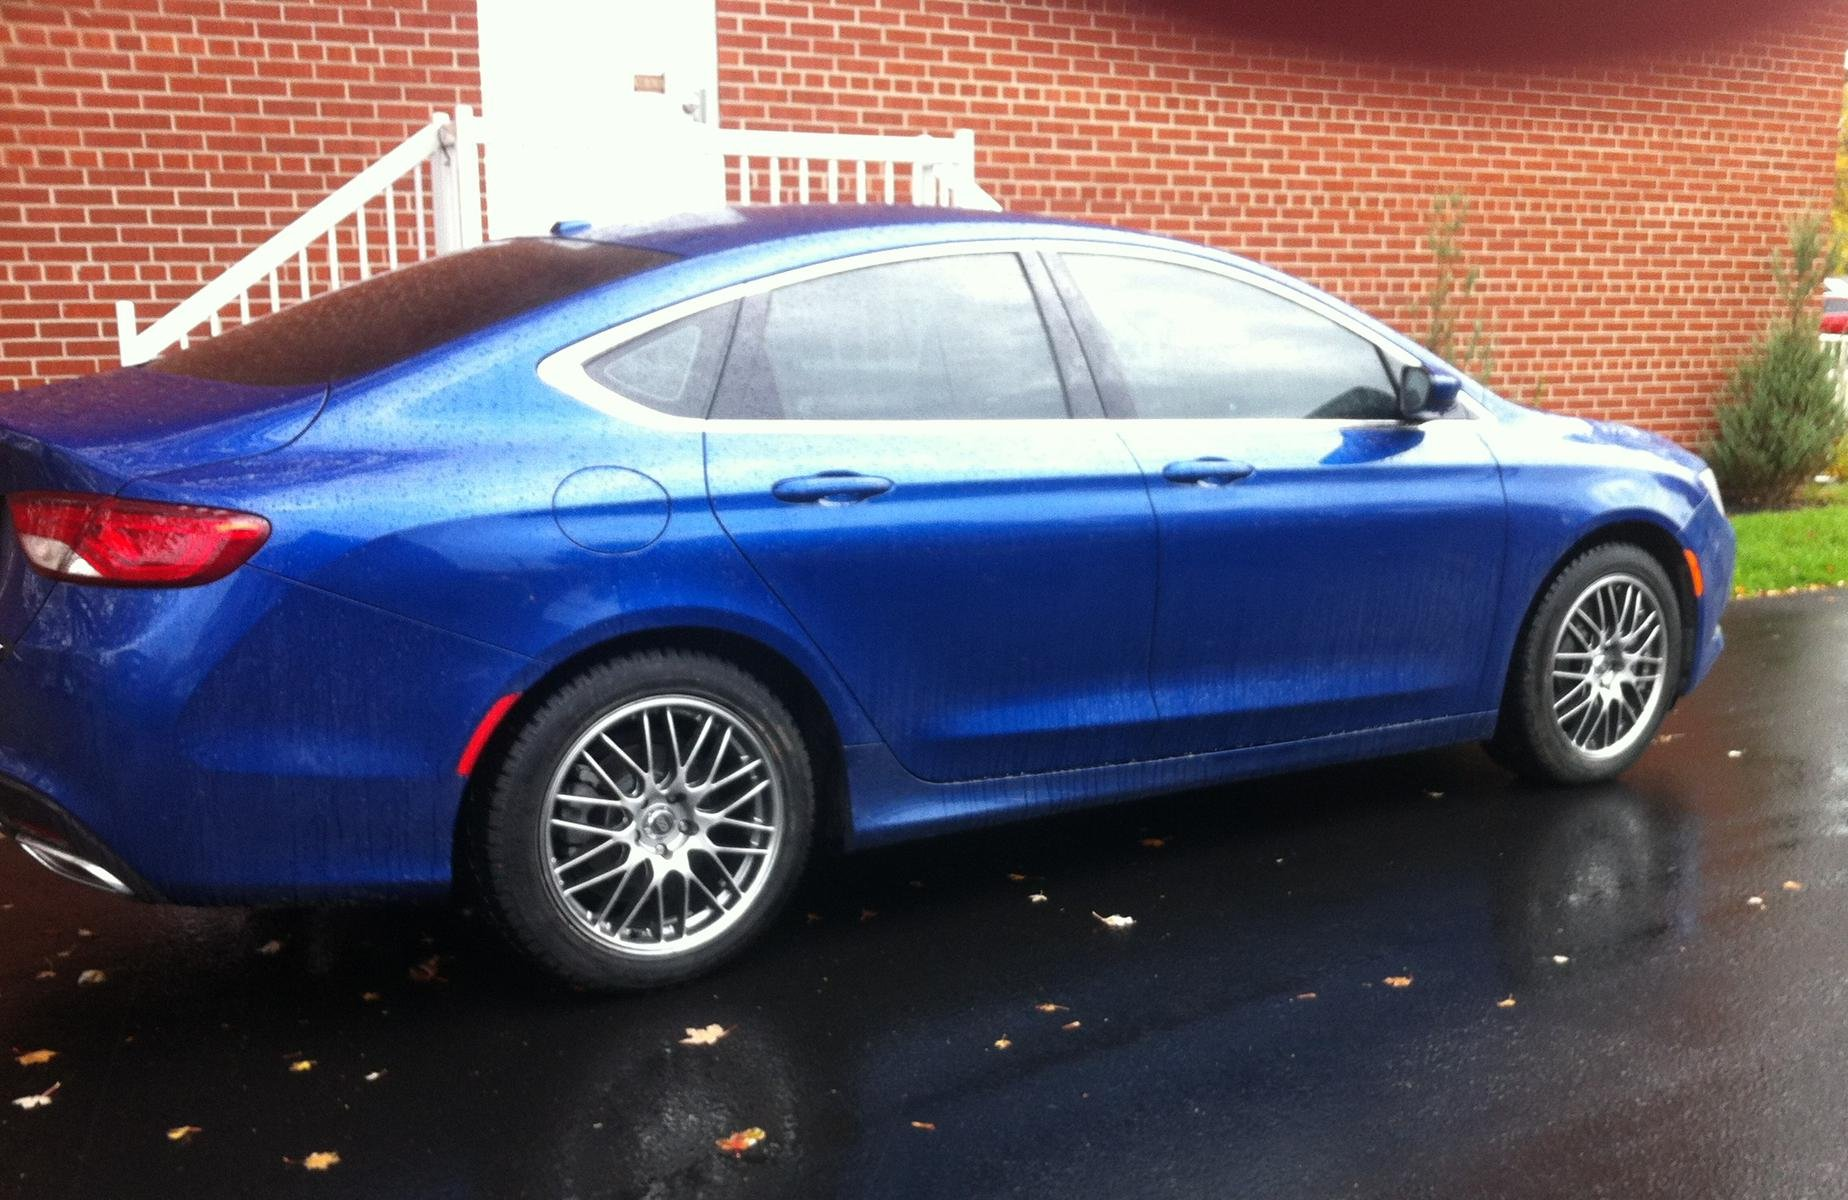 D Aftermarket Wheels Chrysler Limited Img on 2013 Chrysler 200 Warranty